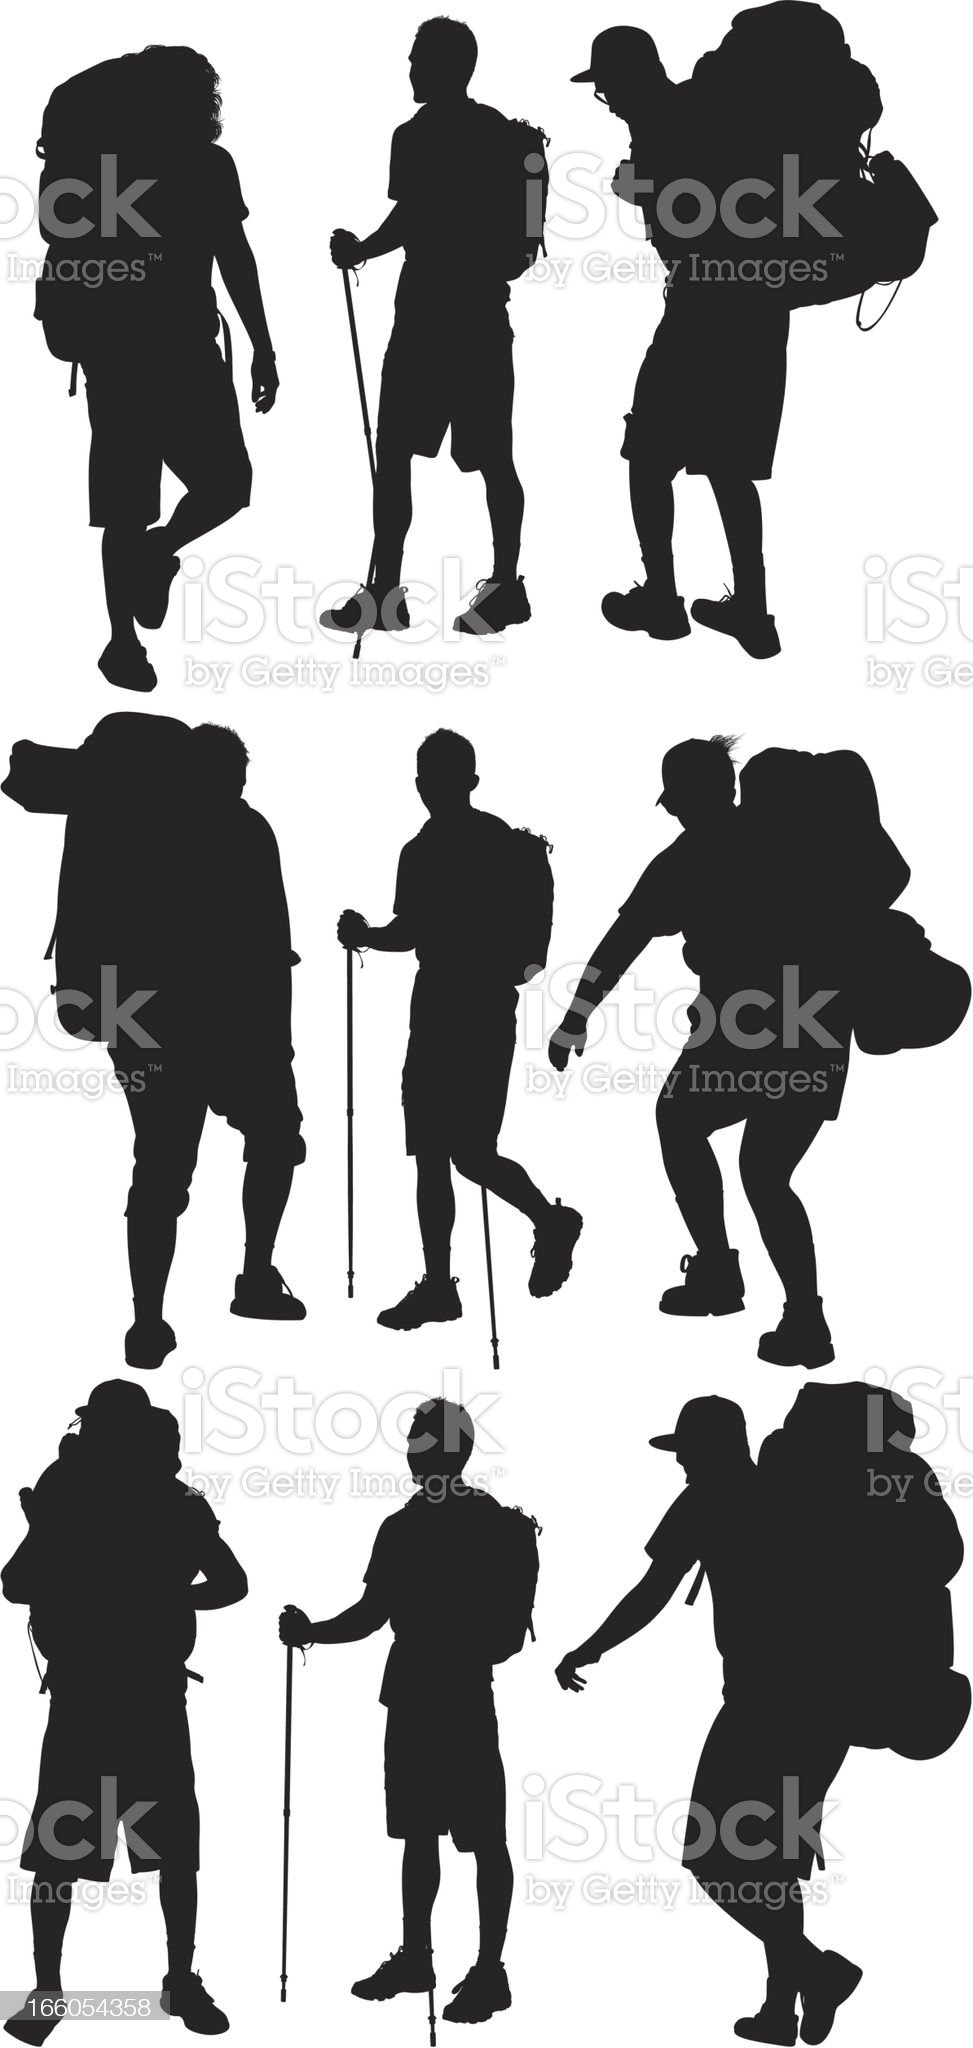 Multiple images of hikers royalty-free stock vector art